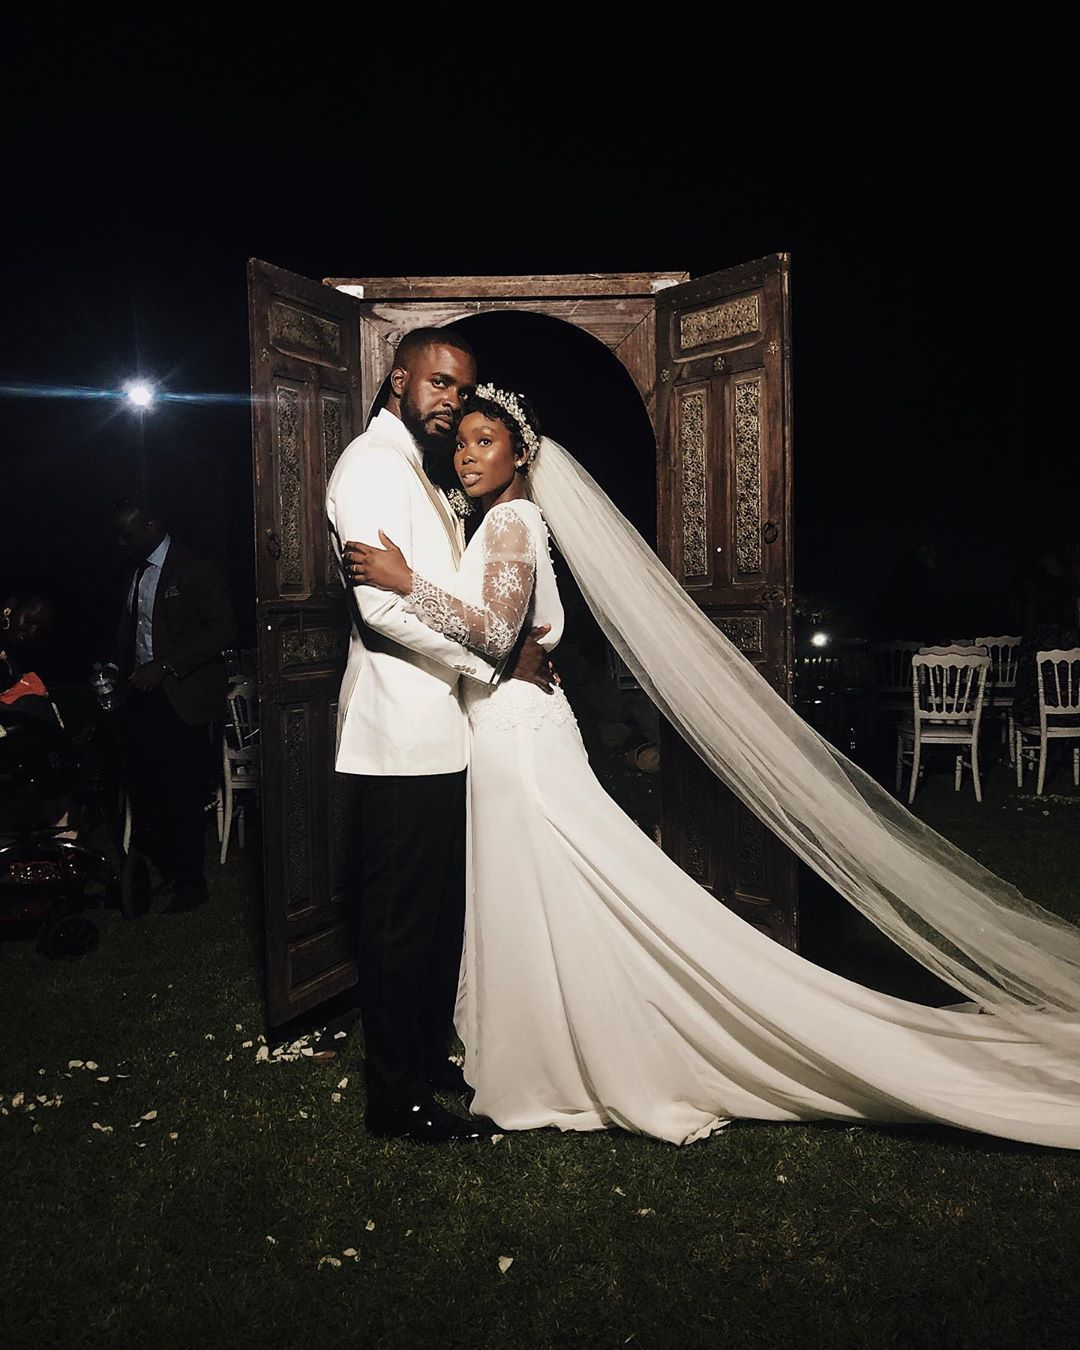 Check Out this Lovely First Photo of Dodos & Her Love Tolulope's Intimate Destination Wedding in Marrakech 😍